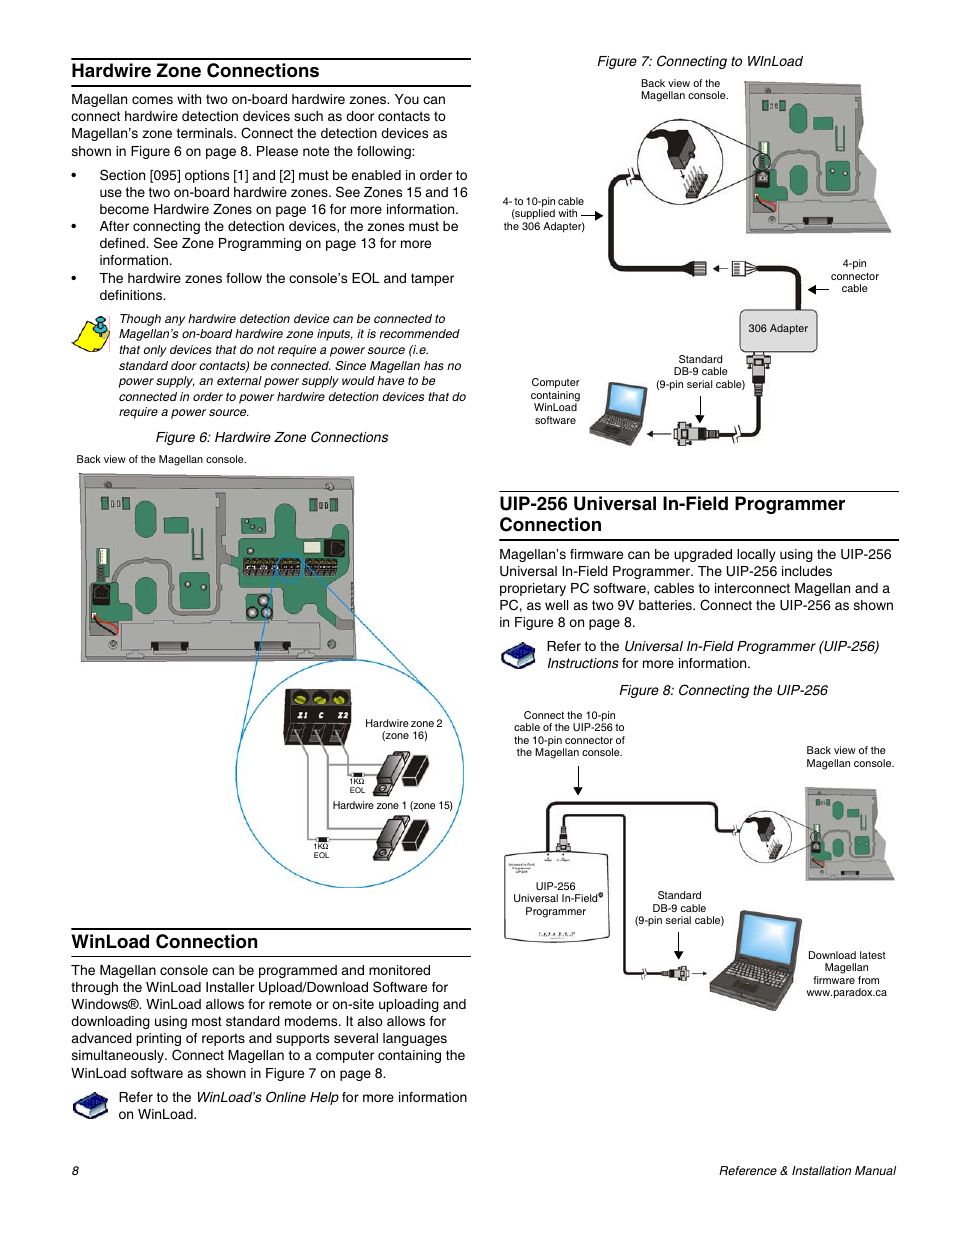 Hardwire zone connections, Winload connection, Uip-256 universal in-field  programmer connection